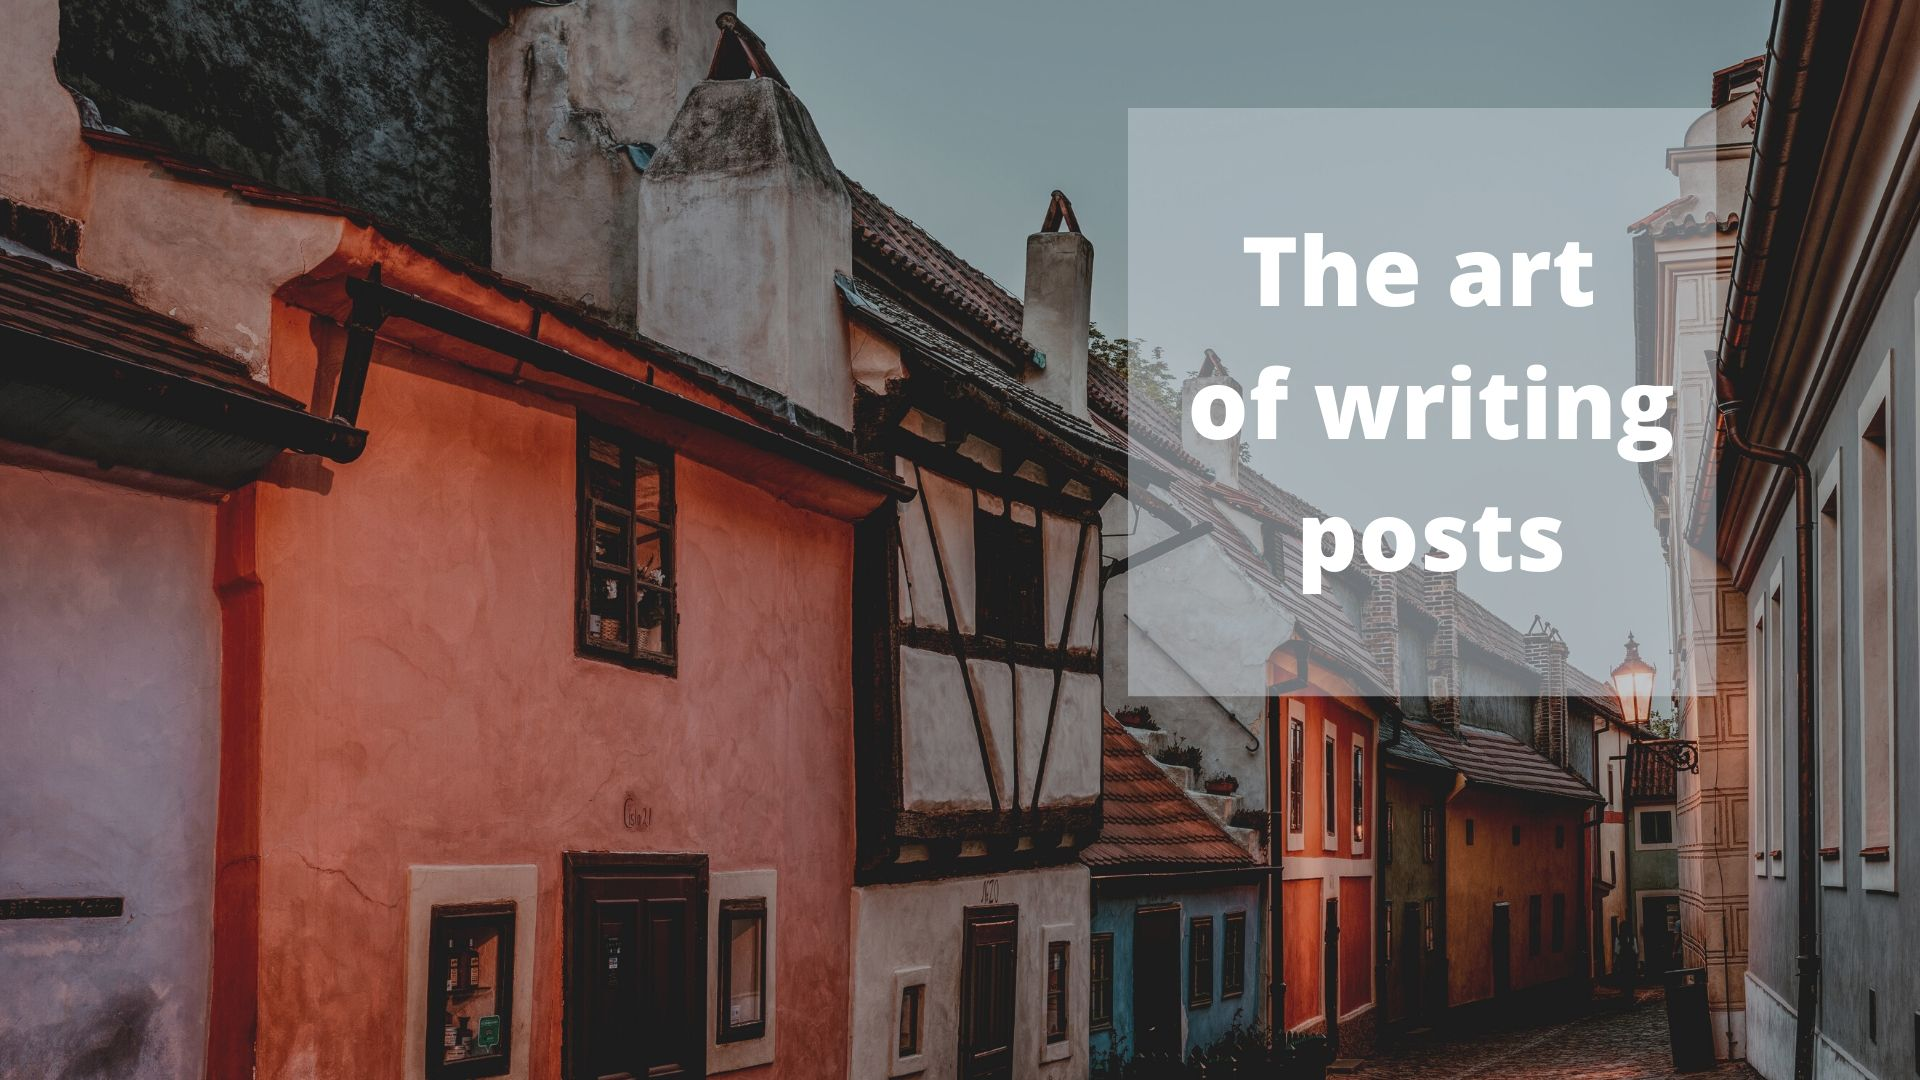 The art of writing posts